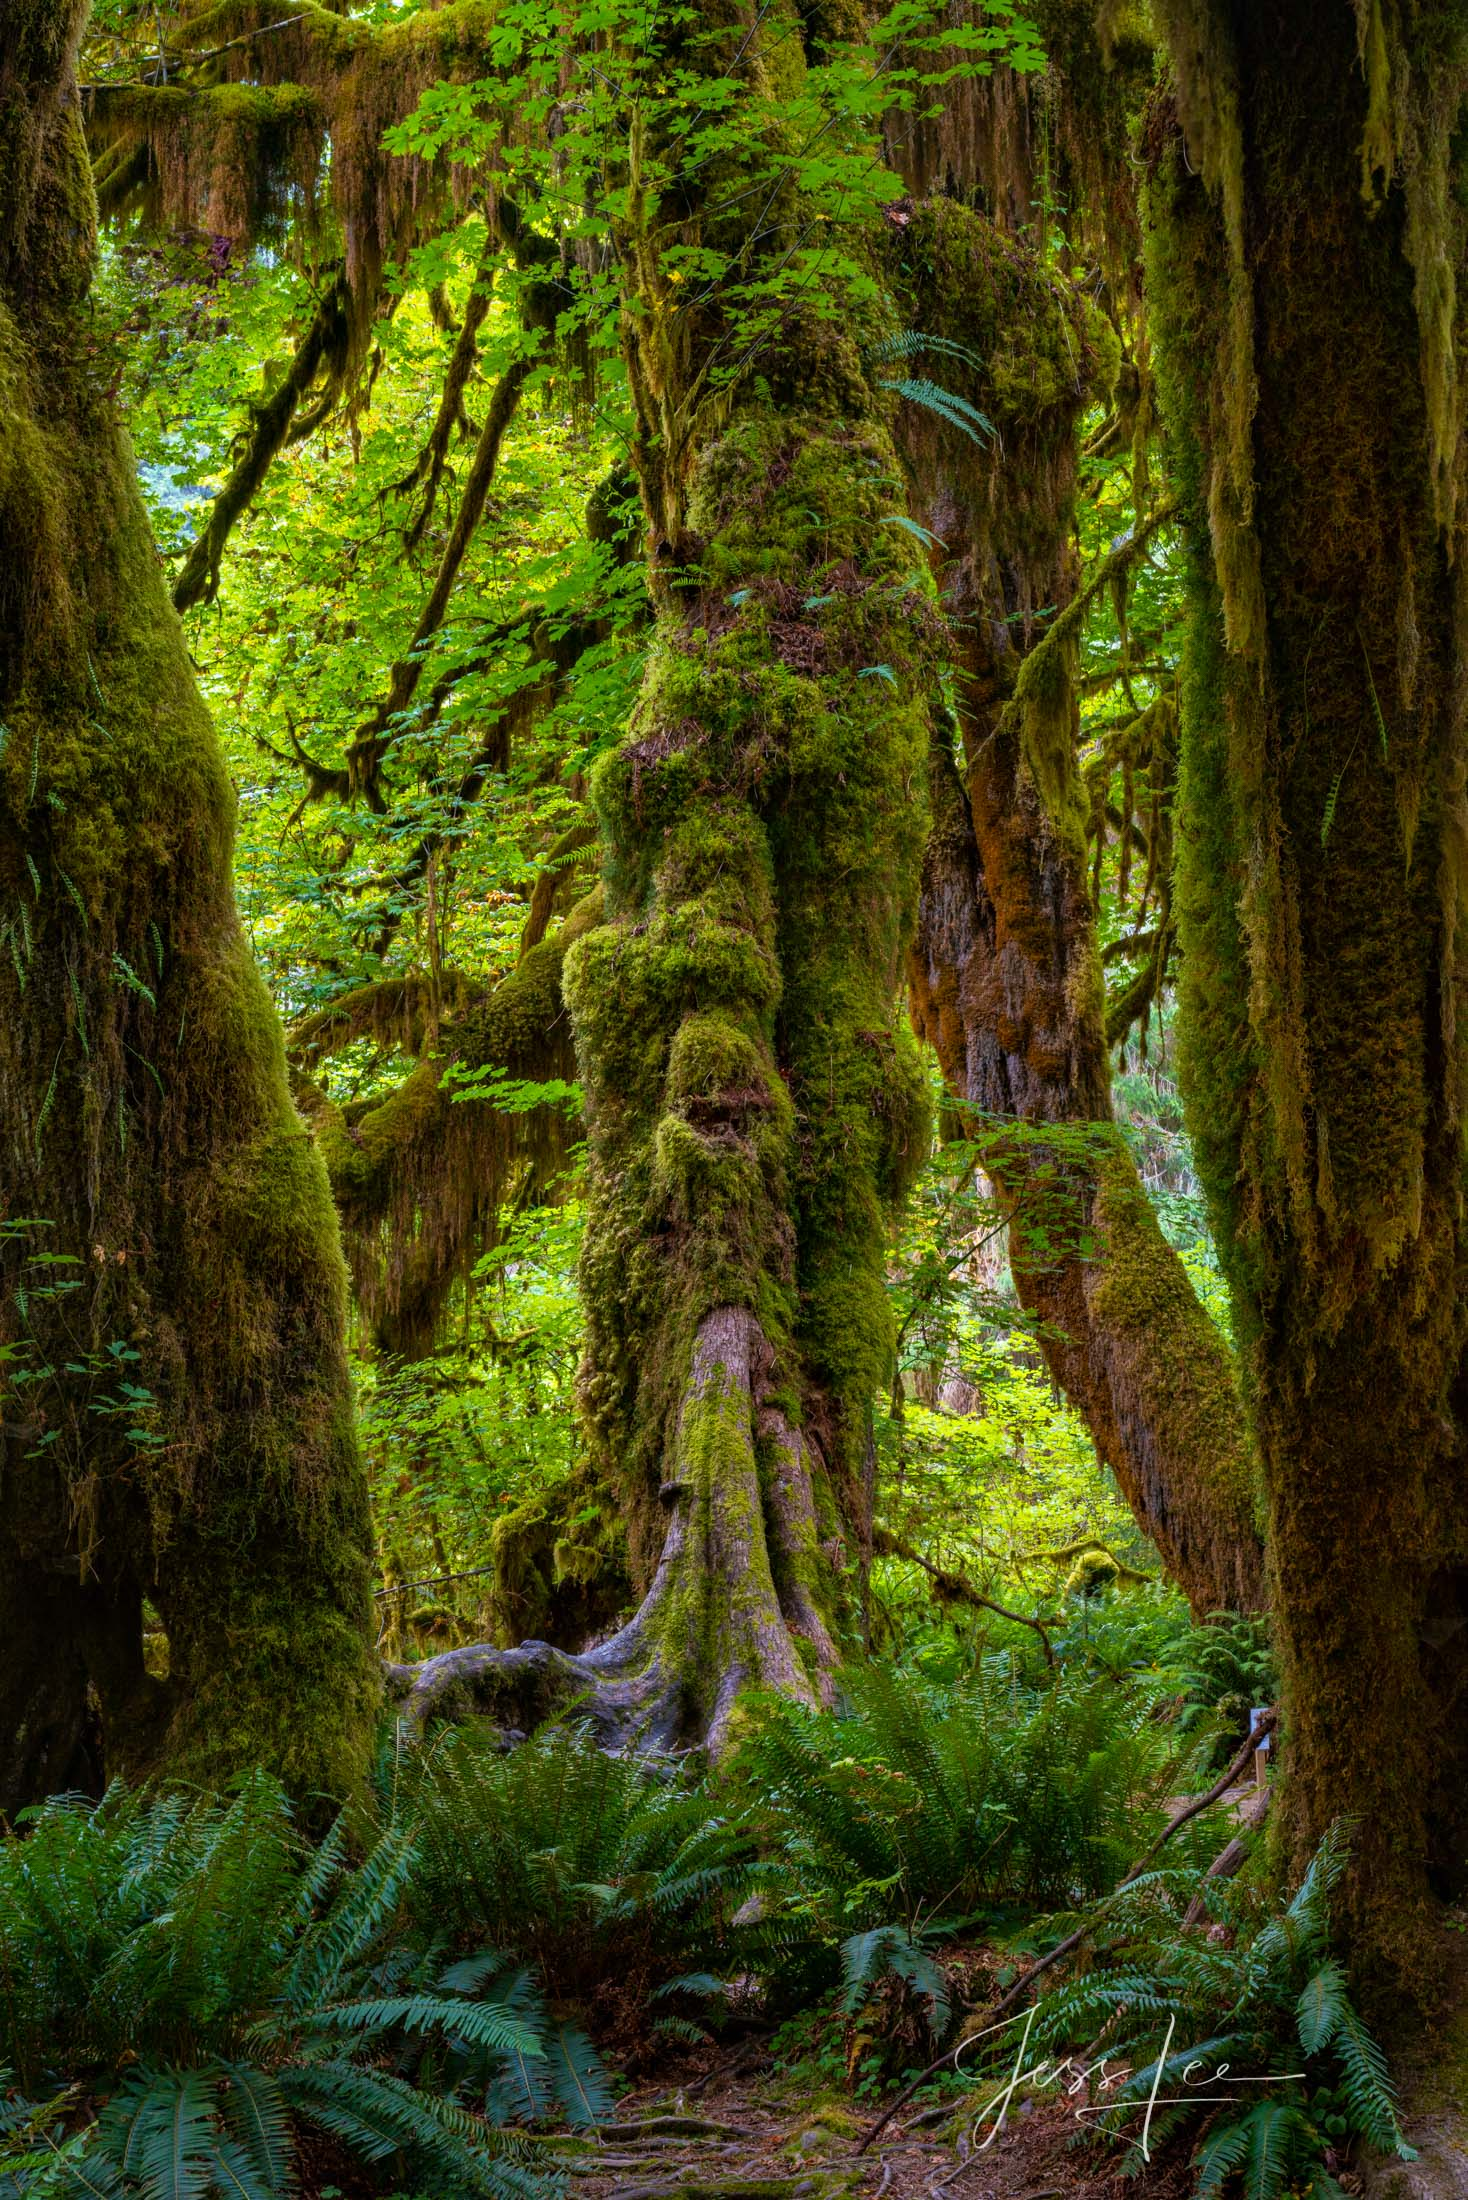 Bring the beauty of the Hoe Rainforest into your home with Jess Lee's limited edition fine art photography print Stand Out from...